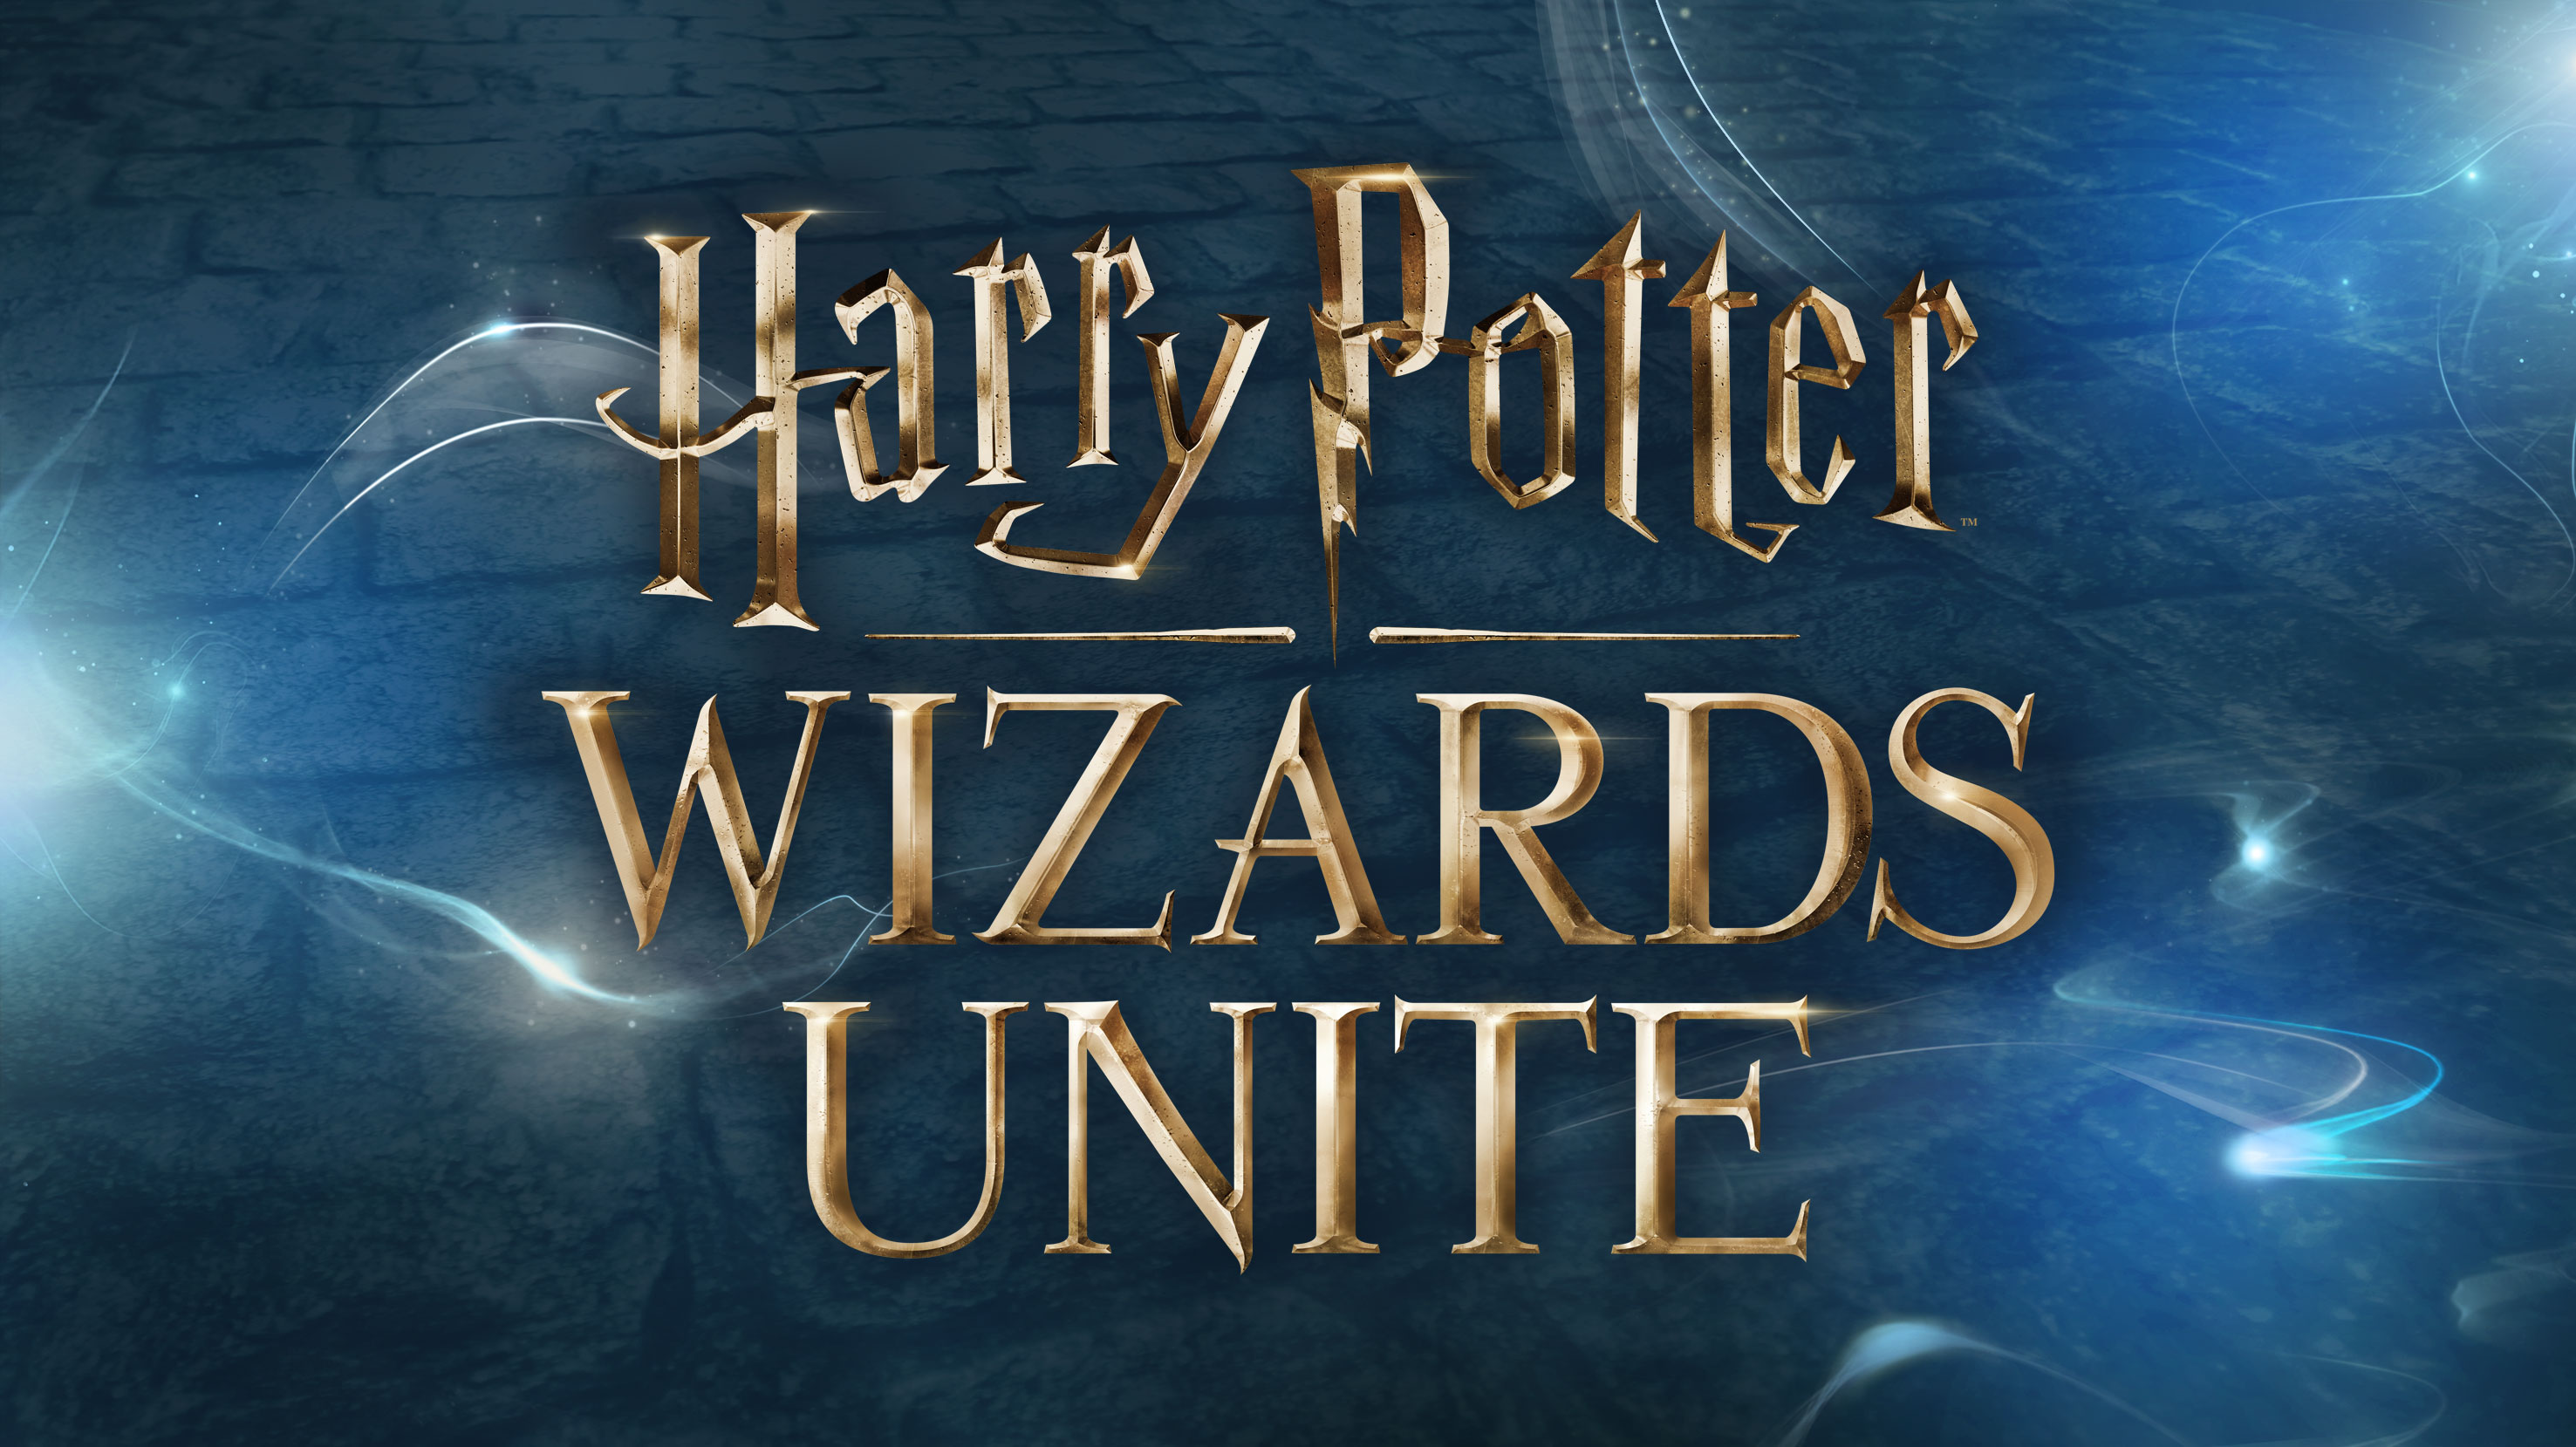 Wizards Unite GamePress